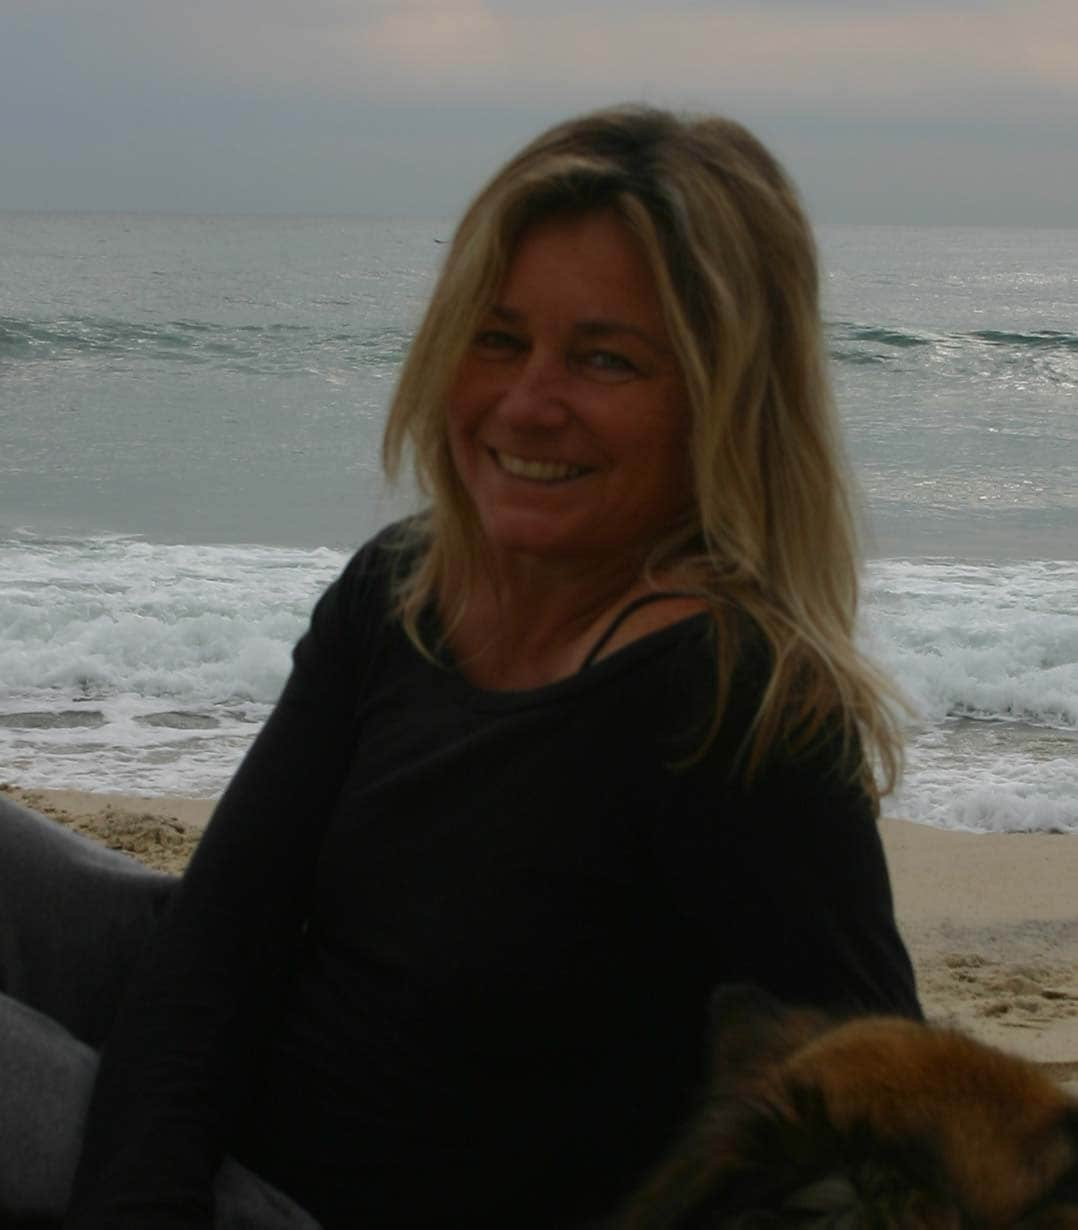 Kristen is a surfer who has lived in Byron Bay for